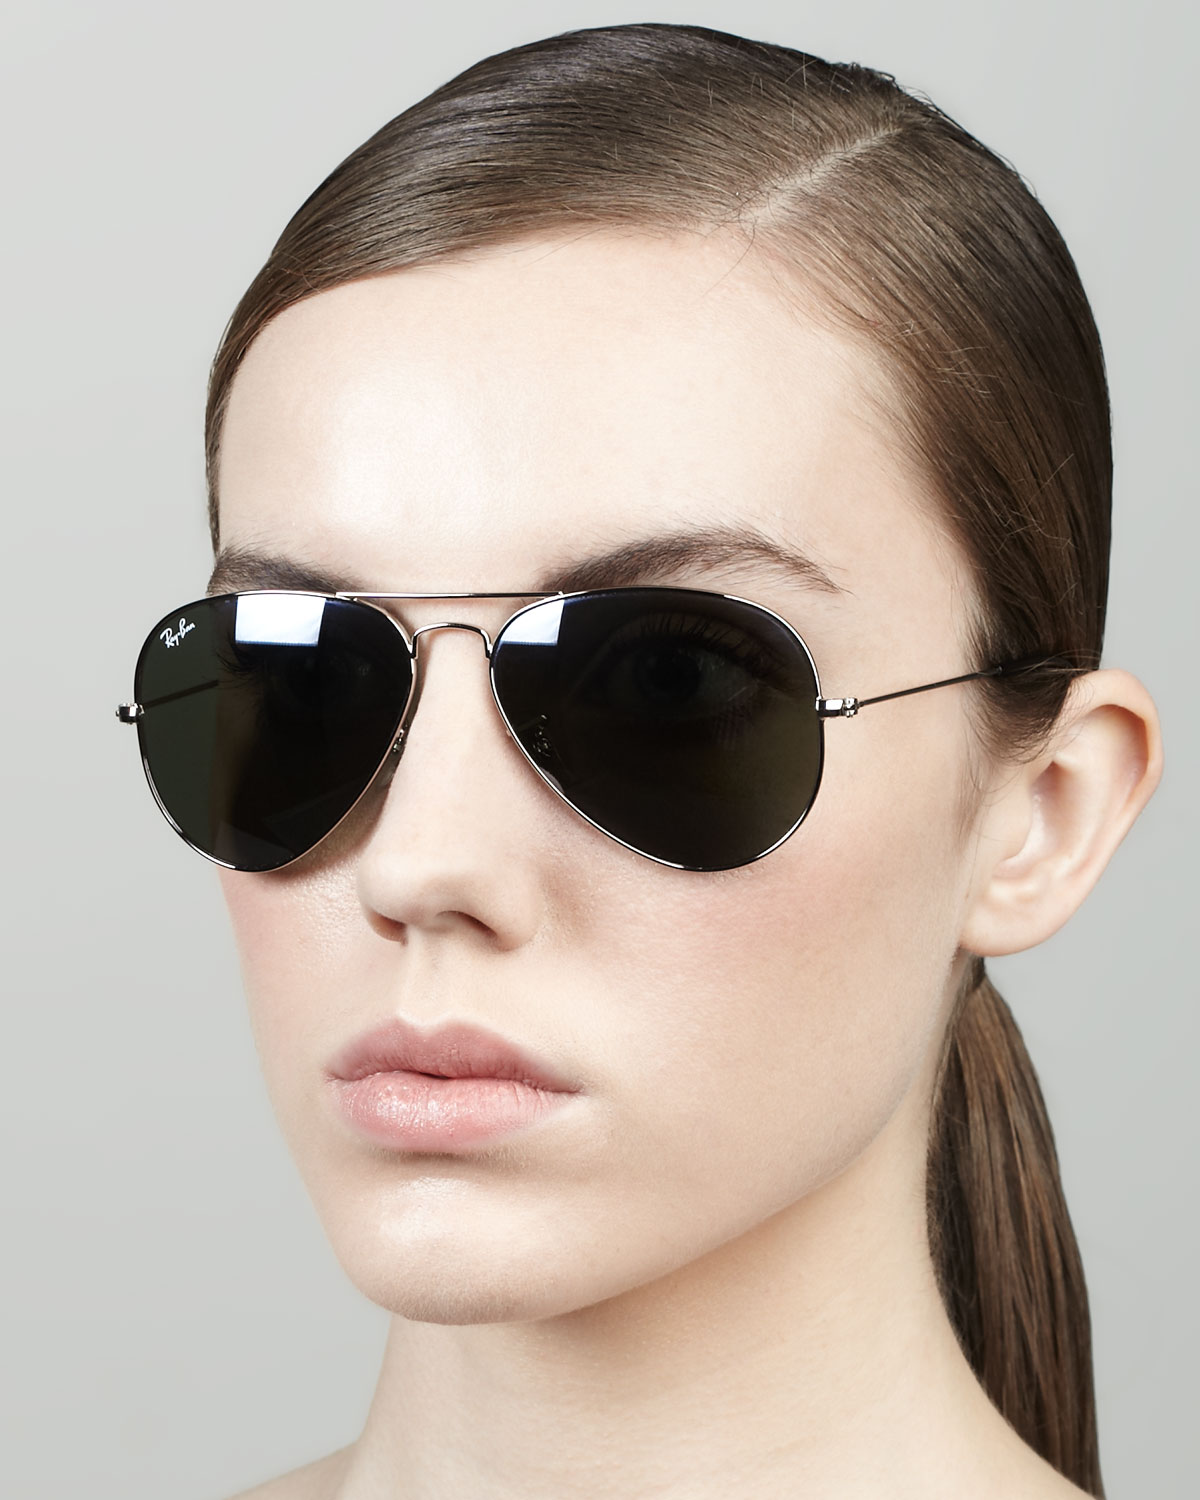 aviator sunglasses ray ban osjp  aviator sunglasses ray ban